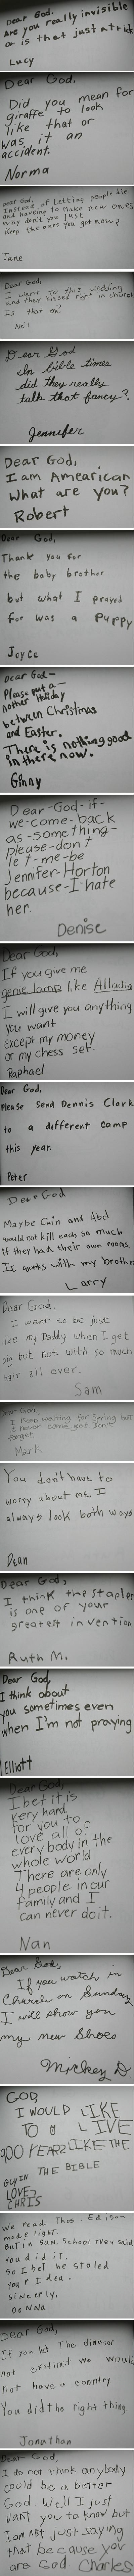 So precious!: Dear God, My Heart, Cutest Things, Children, Too Funny, Adorable, So Funny, New Shoes, Kids Letters